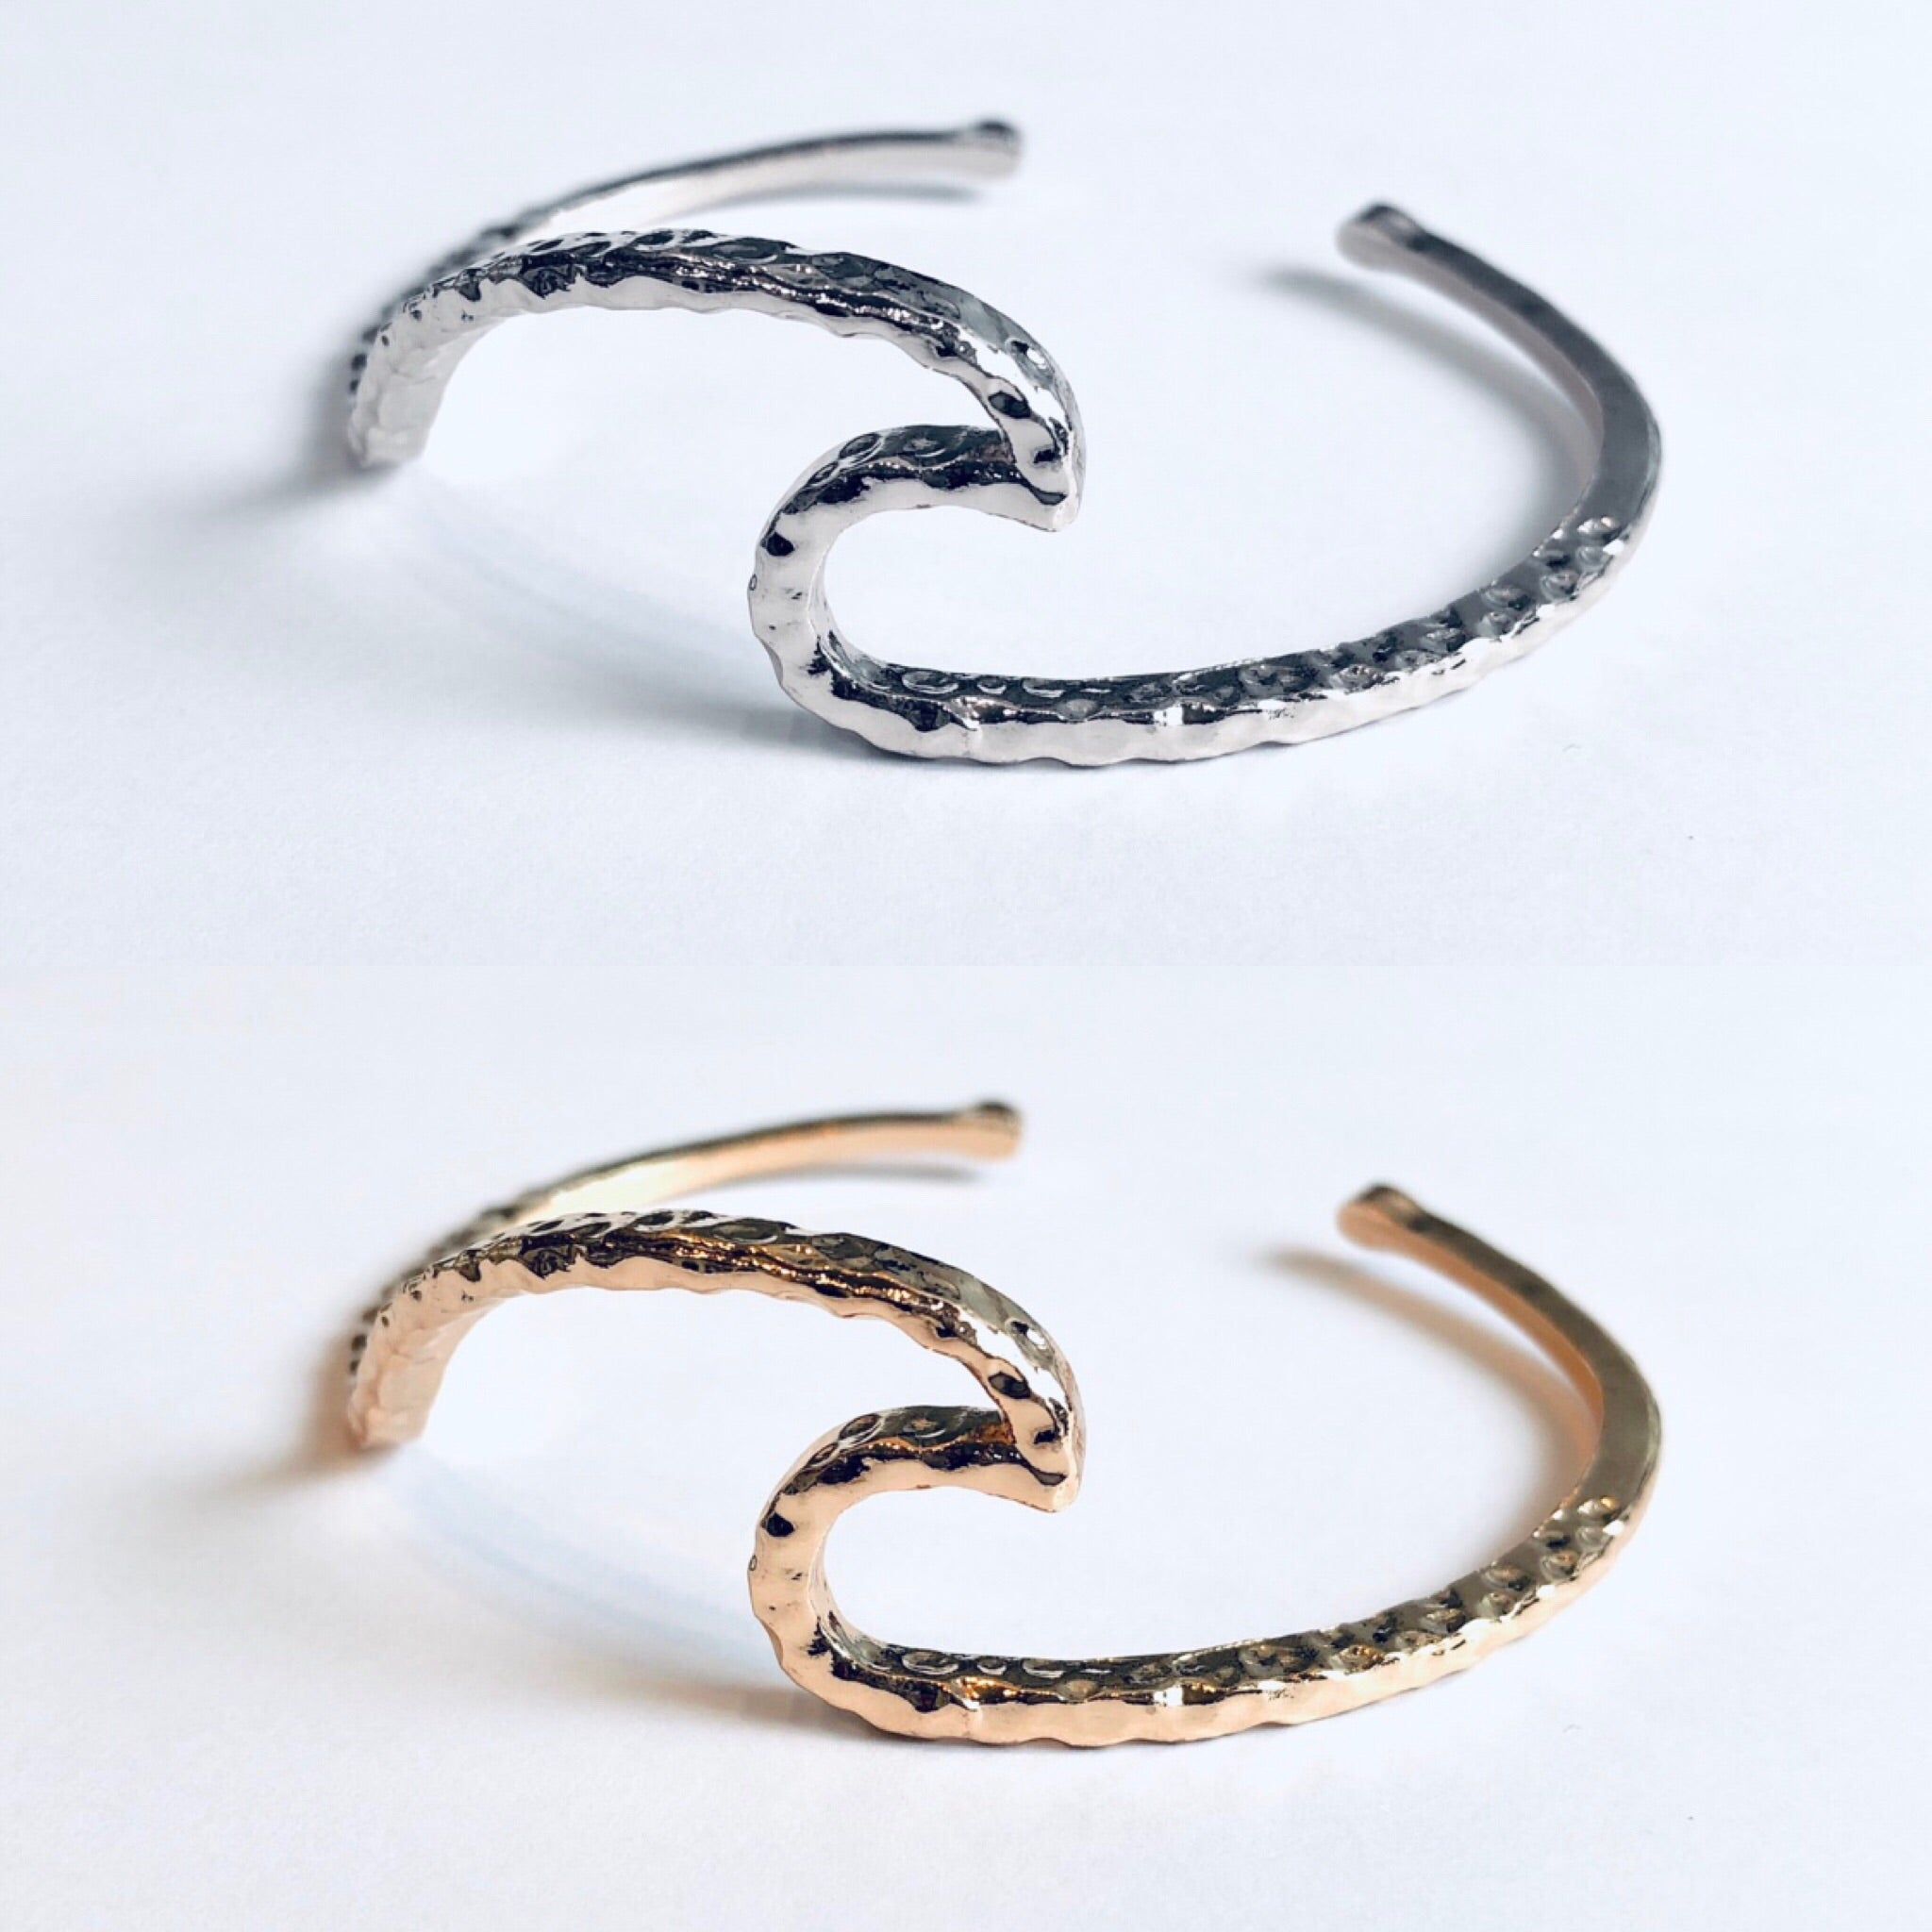 HRM Spring 2019 Journey 'Ripple Effect' Bracelet Bangle in gold or silver